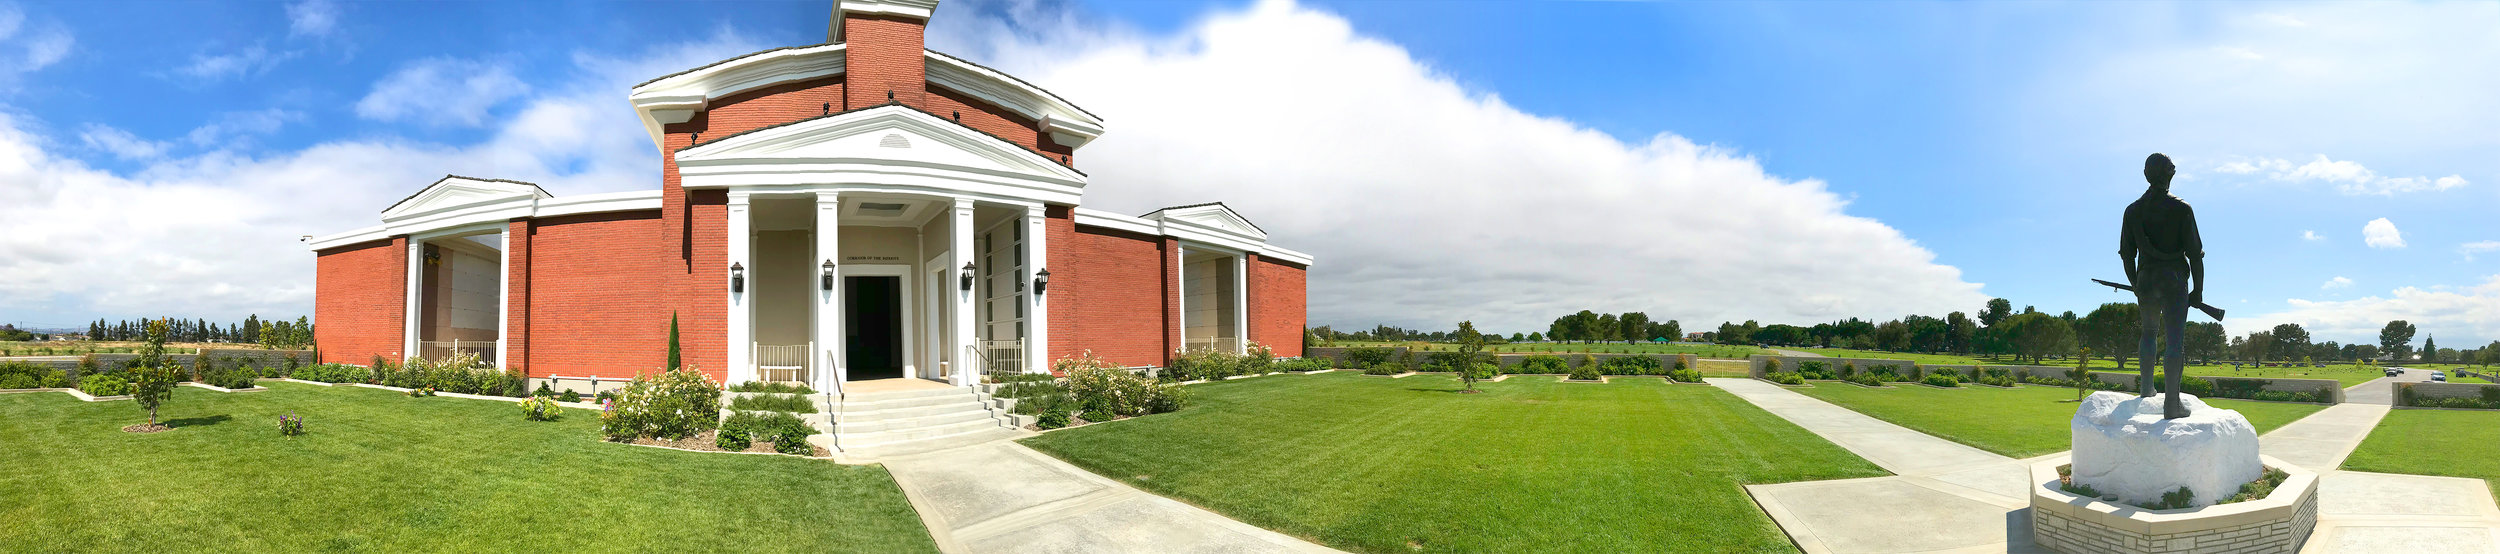 FORESTLAWN_PANO.jpg